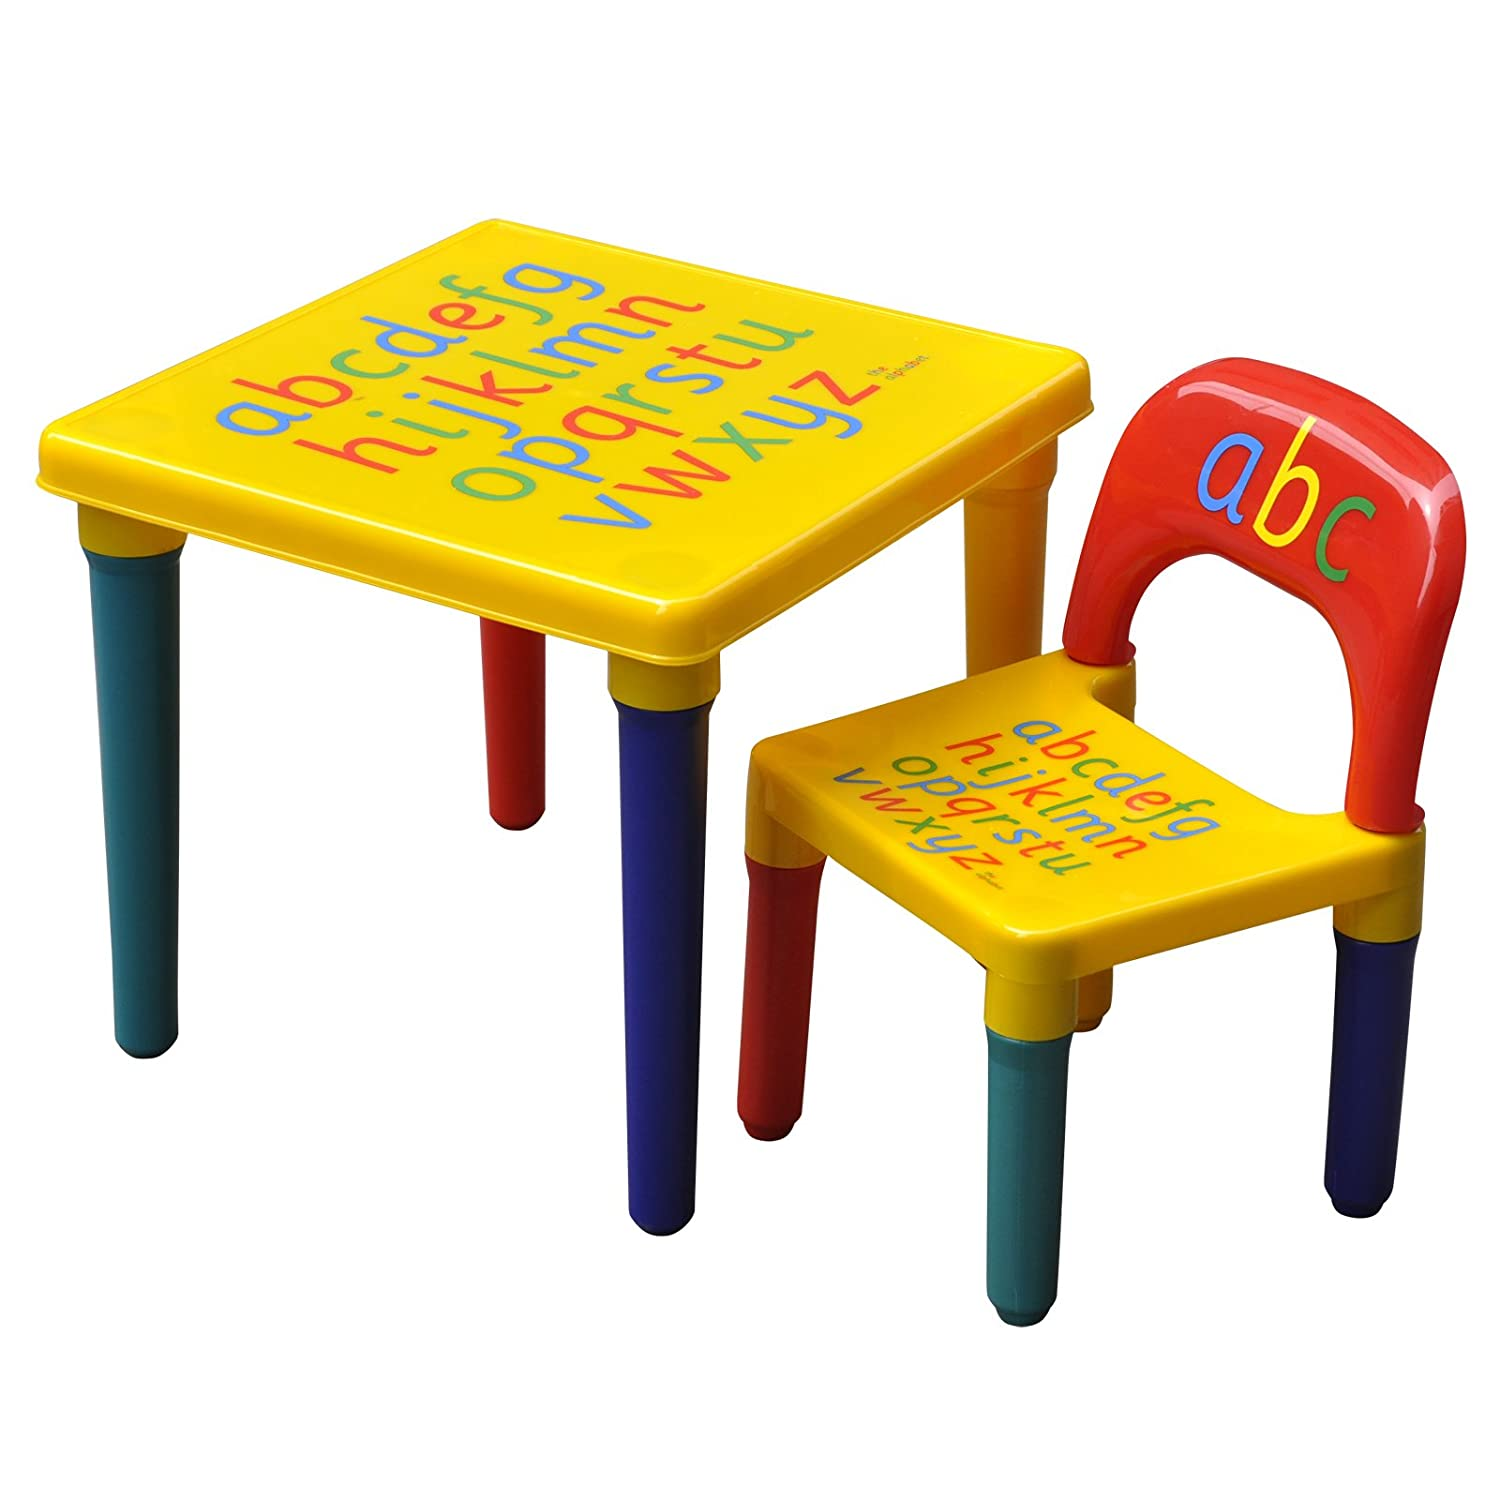 Kids Children Furniture Table And Chair Set Alphabet Design Bedroom Play  Room: Amazon.co.uk: Kitchen U0026 Home